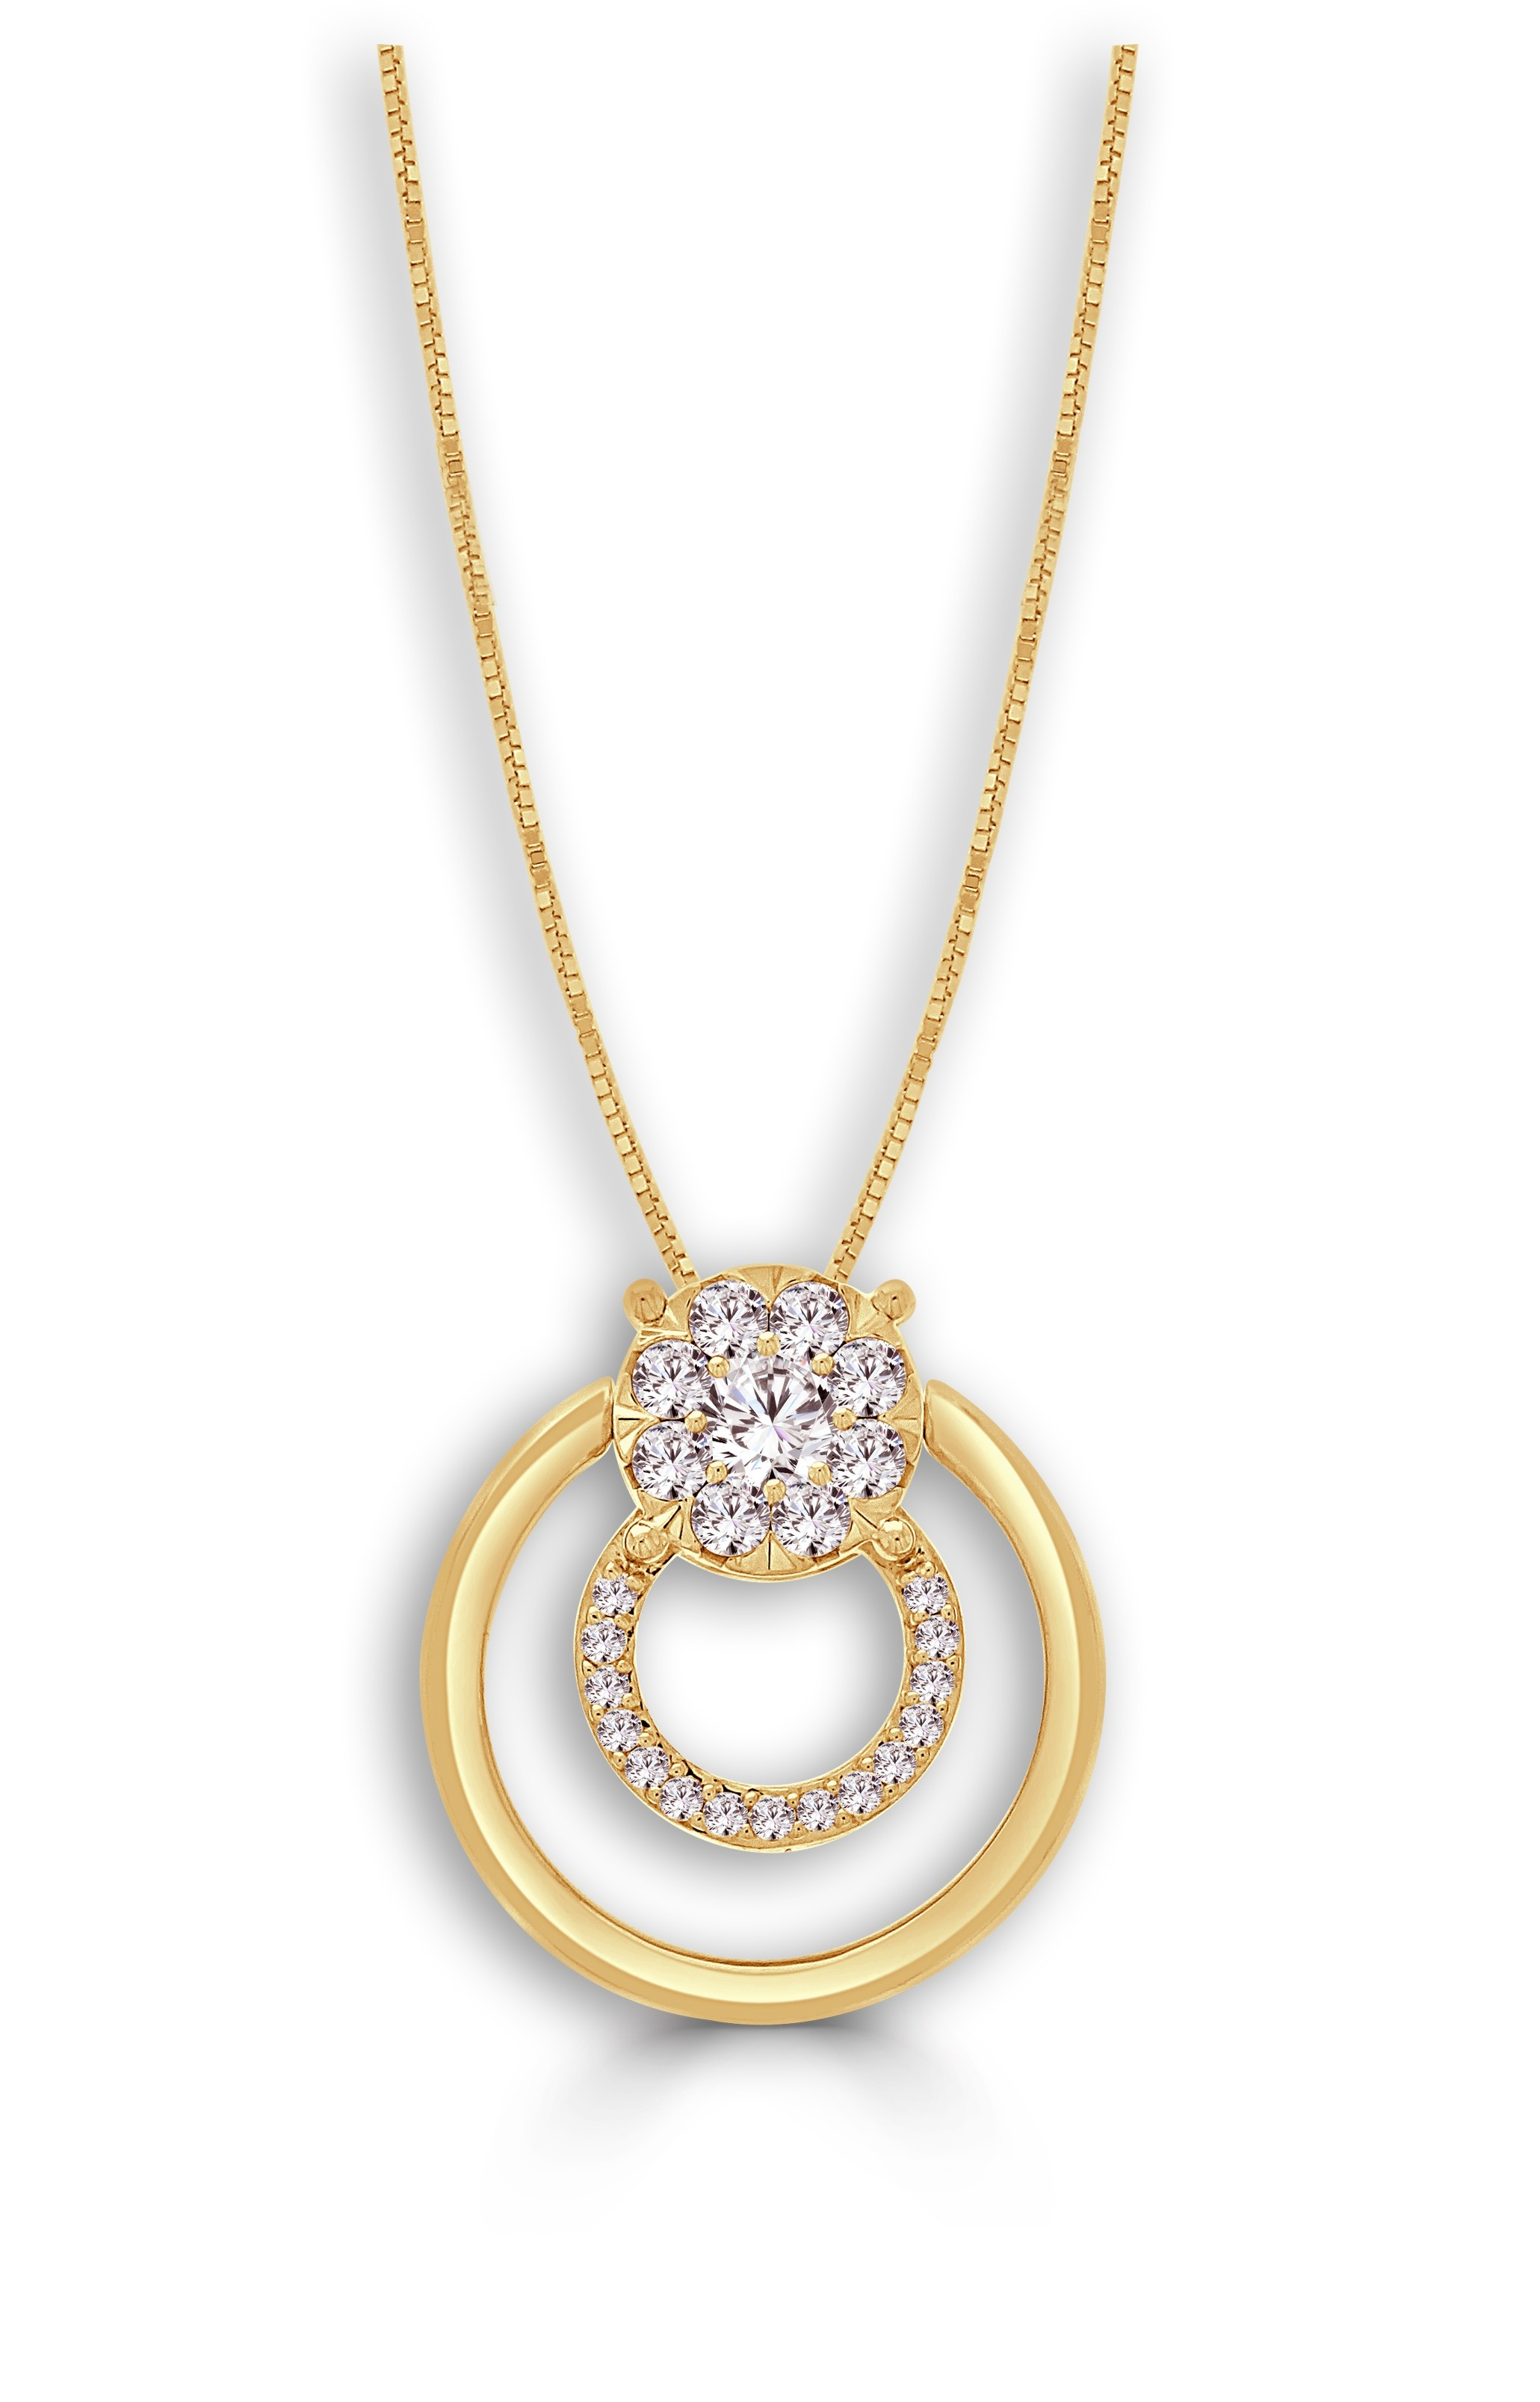 lv sh bar popesco necklace dainty long layering pendant shade stone gold crystal marquise catherine